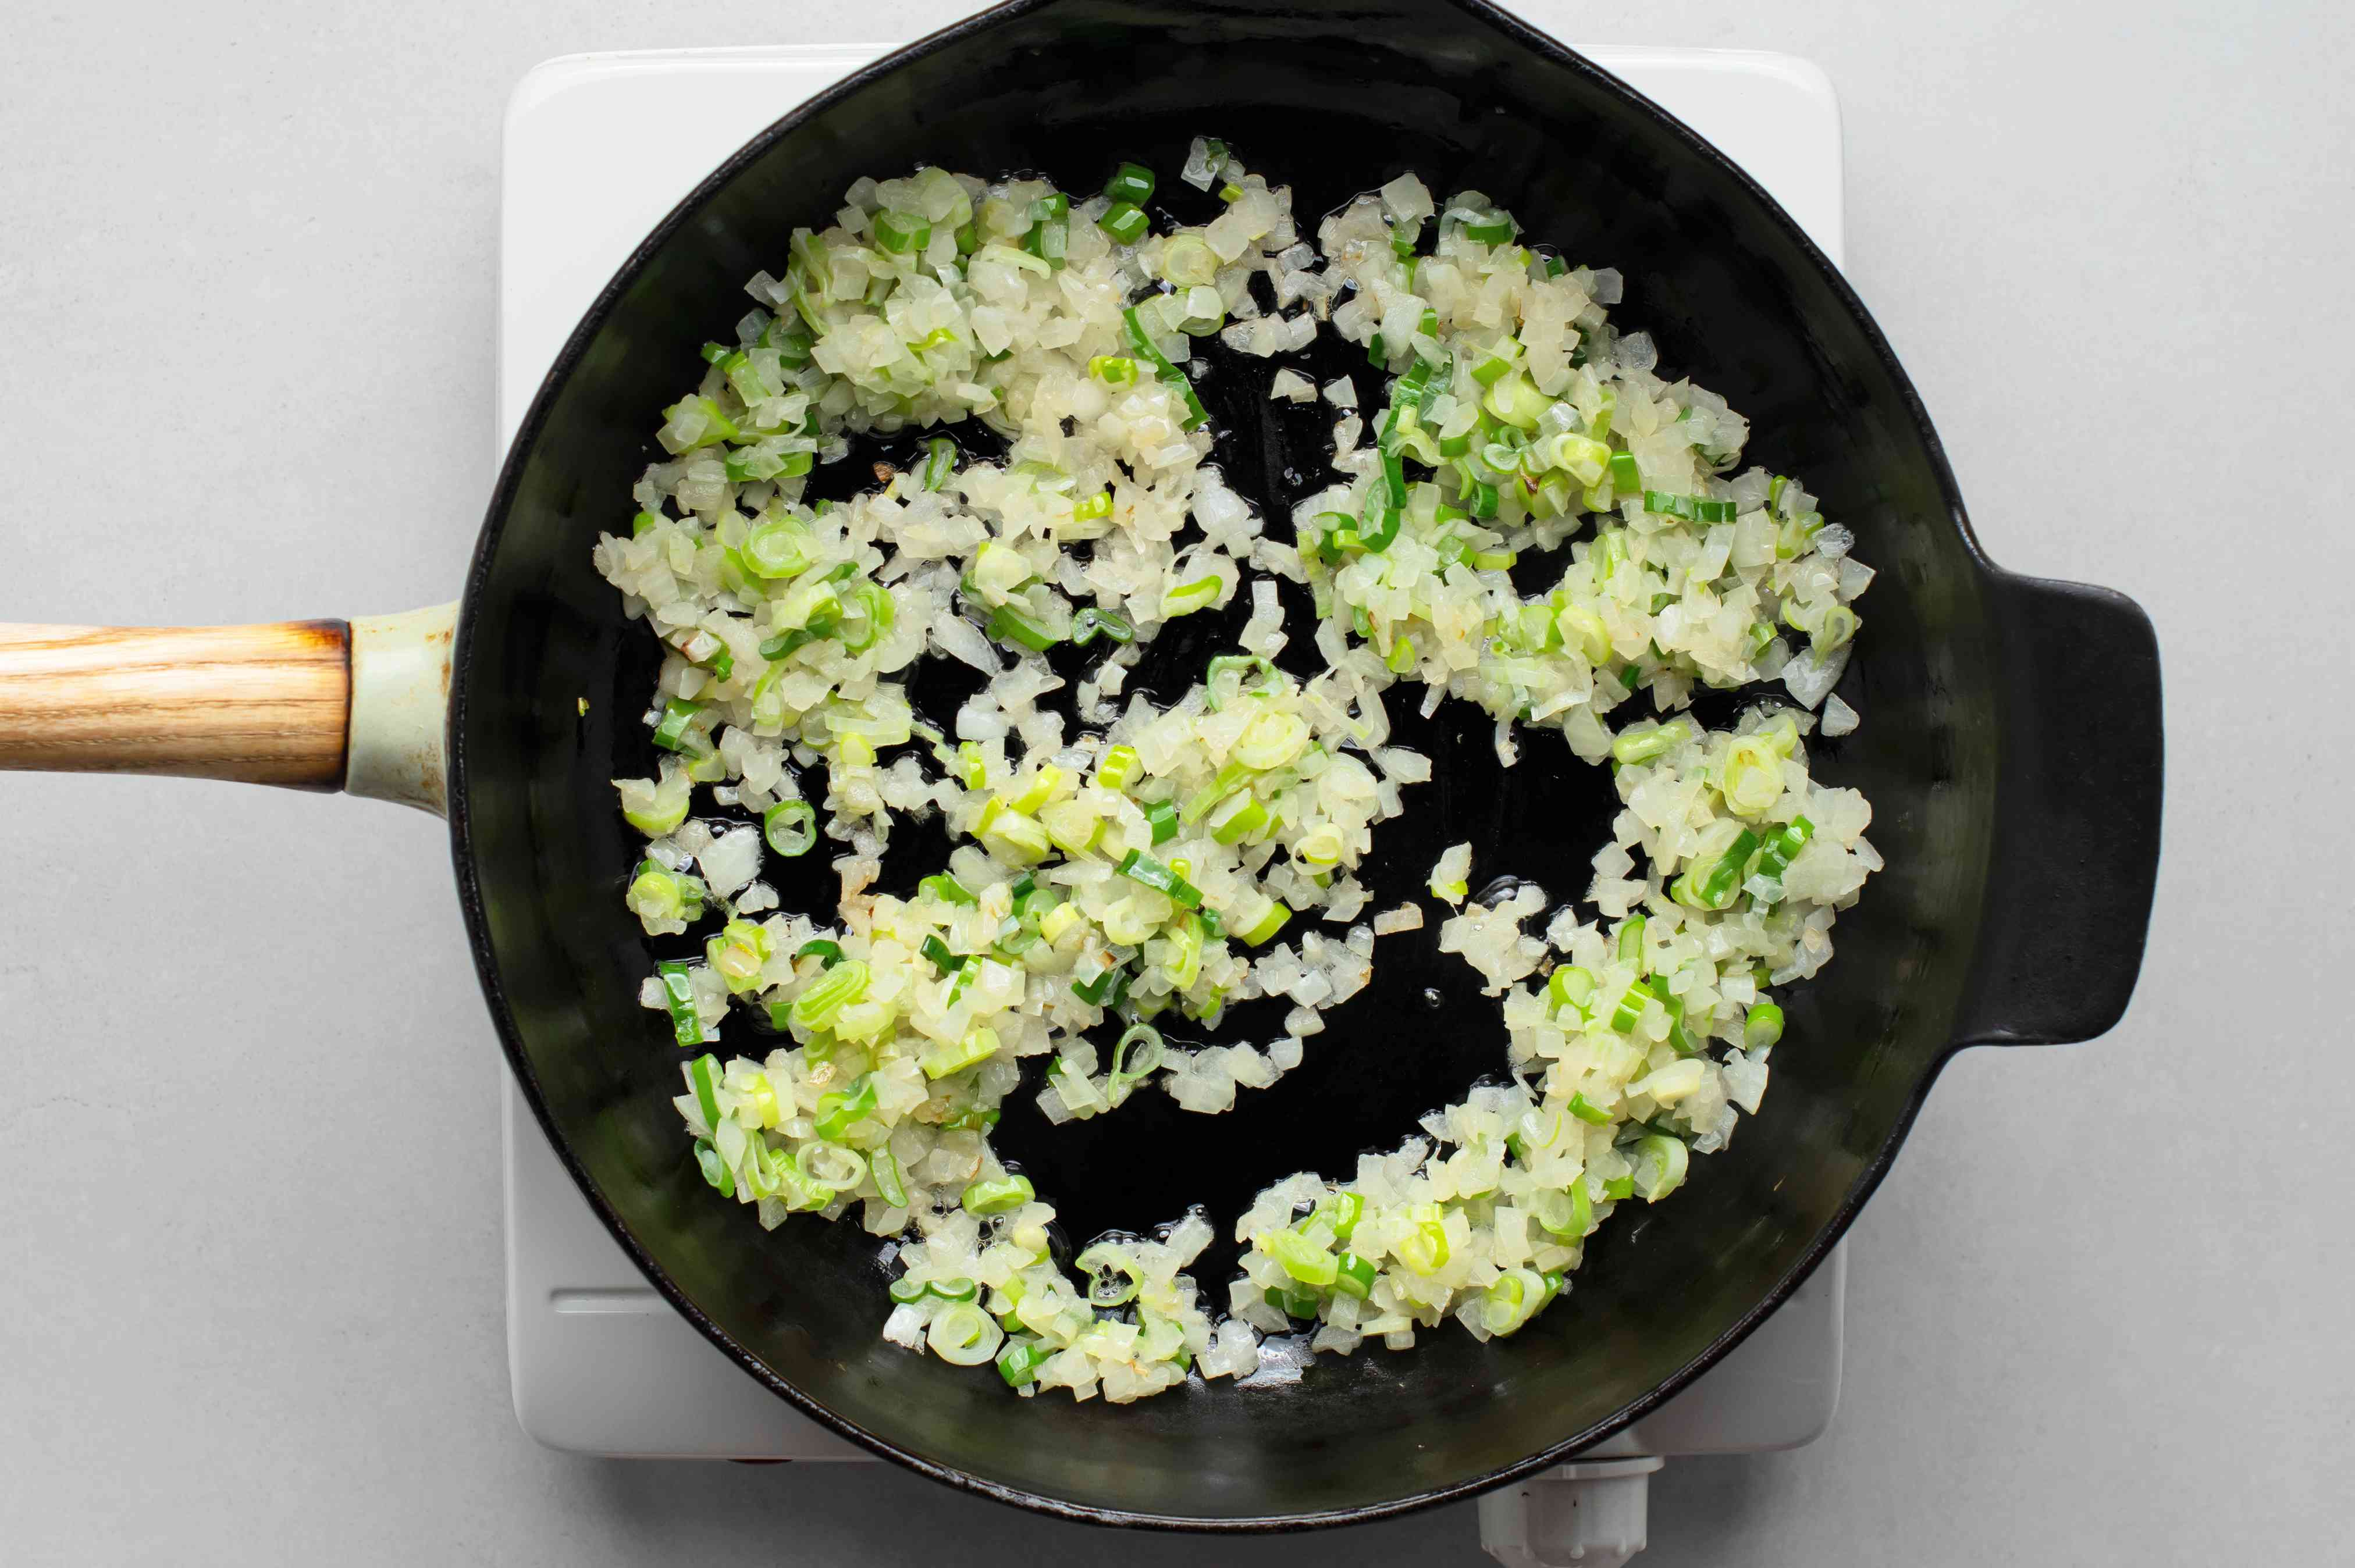 Onions and green onions cooking in a skillet with oil